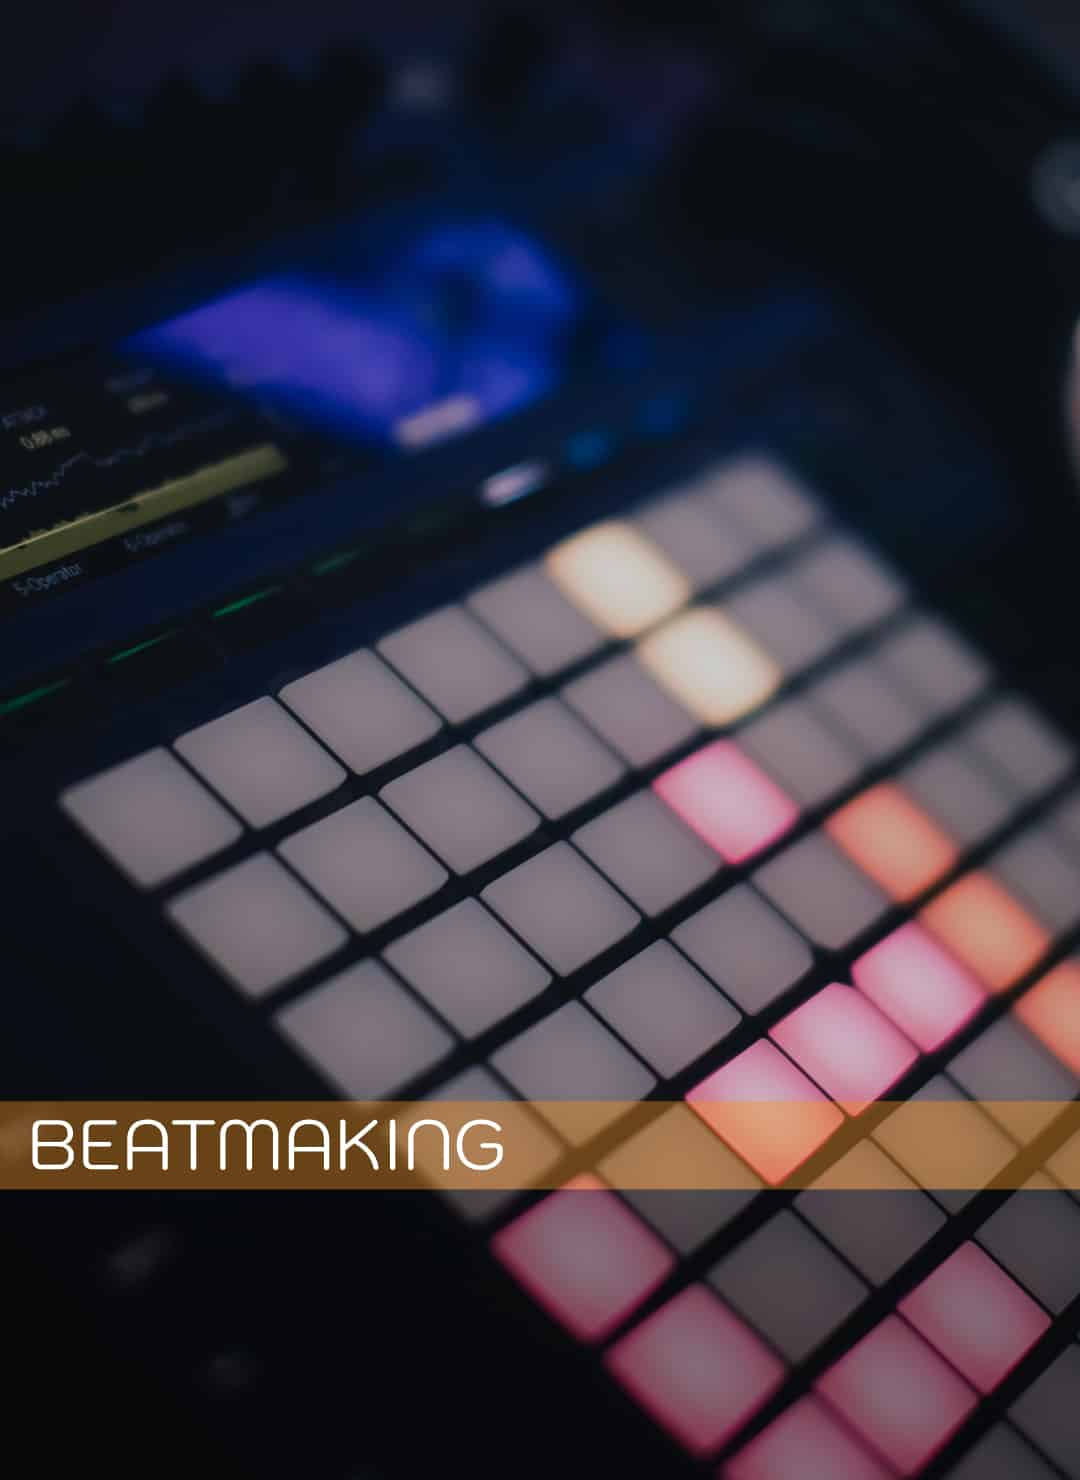 Formation beatmaking